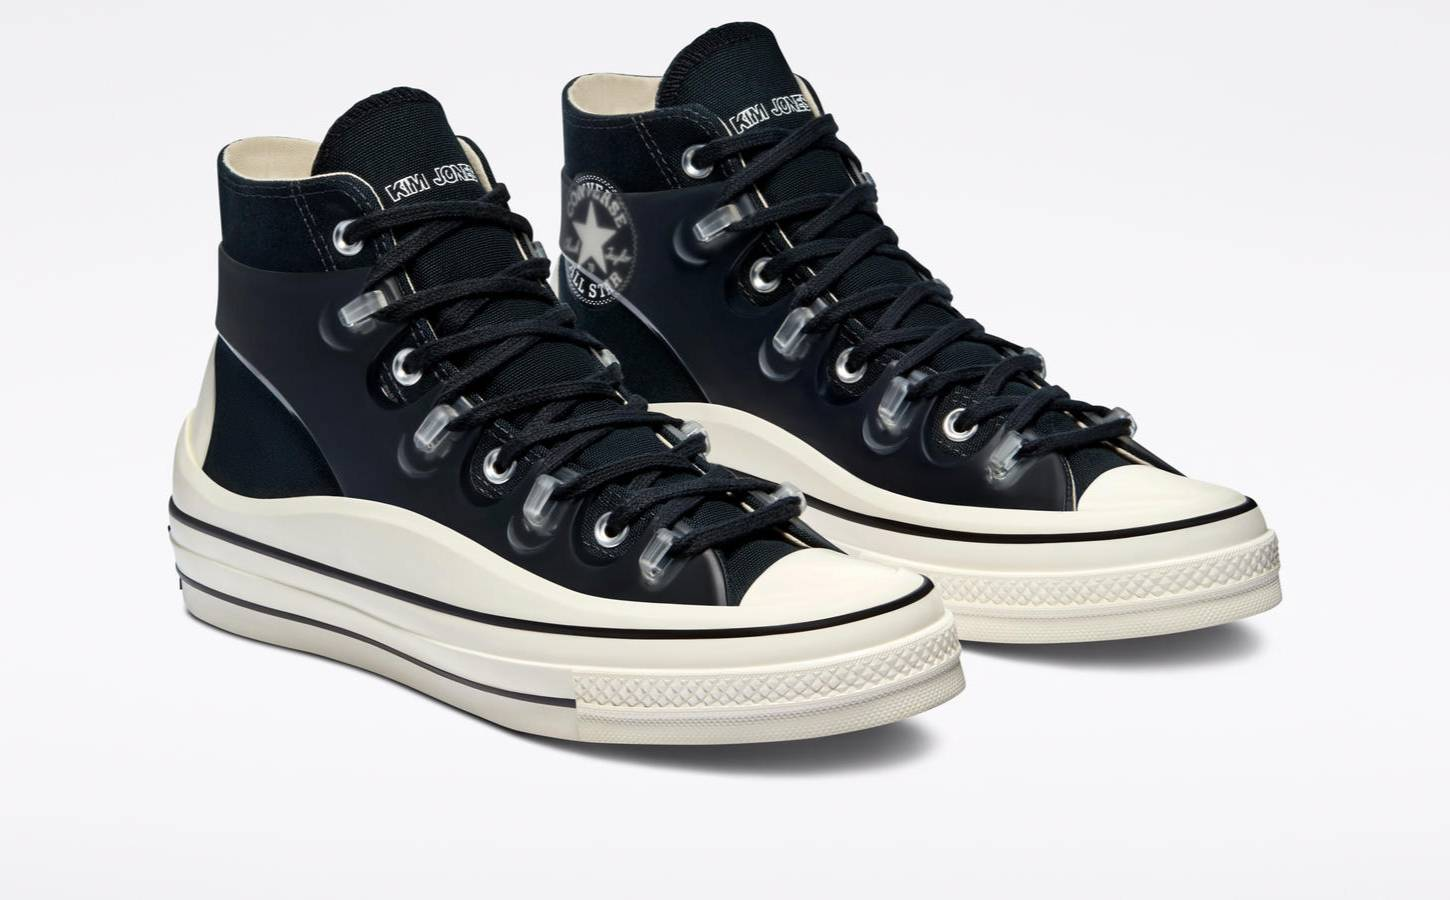 Designer Kim Jones launches collection with Converse